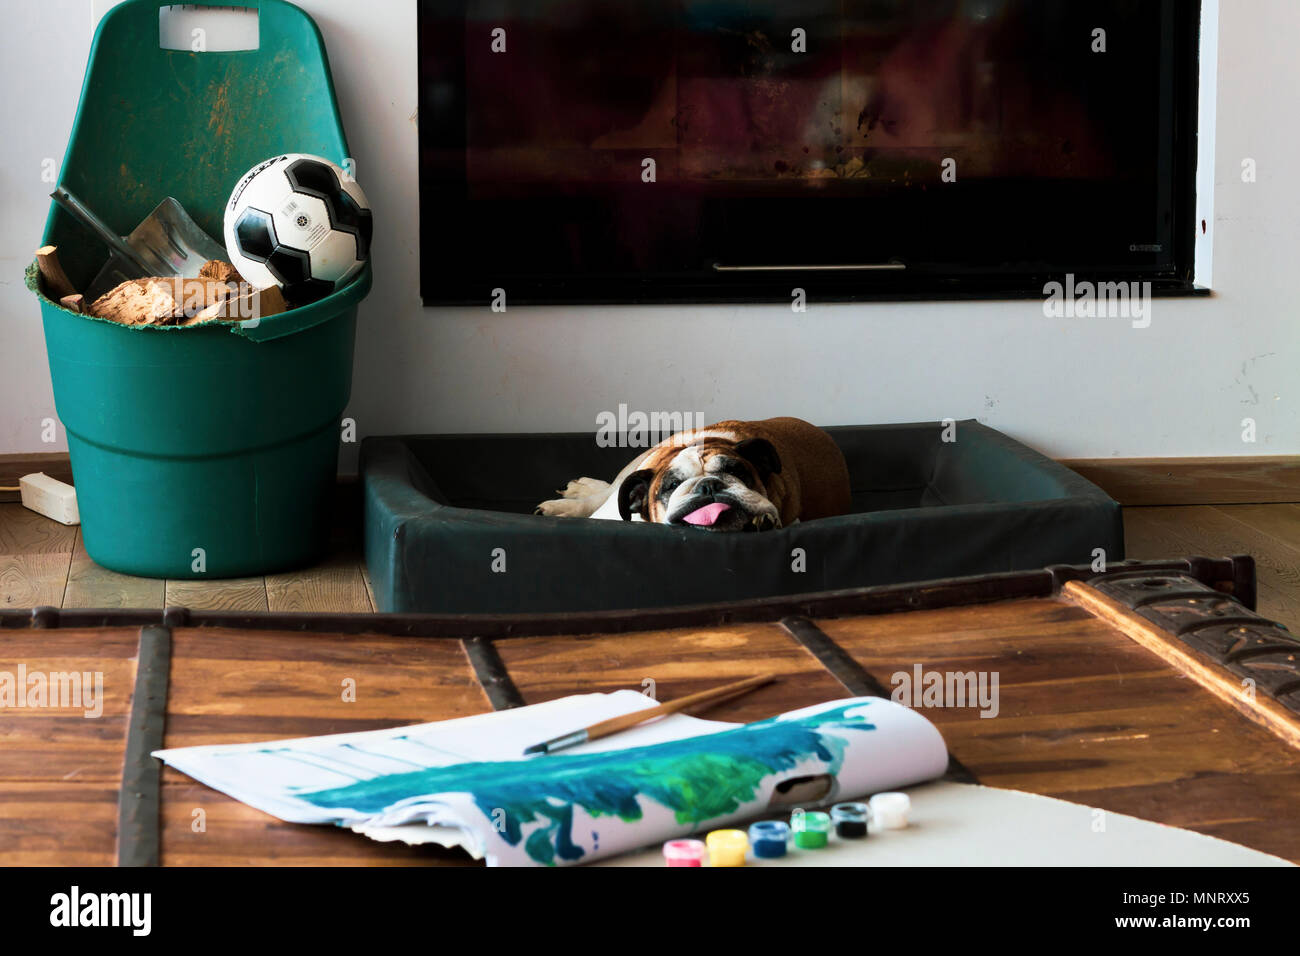 English bulldog sleeping in front of fireplace and coffee table with children's drawings, retro and modern style combination, landscape orientation. - Stock Image